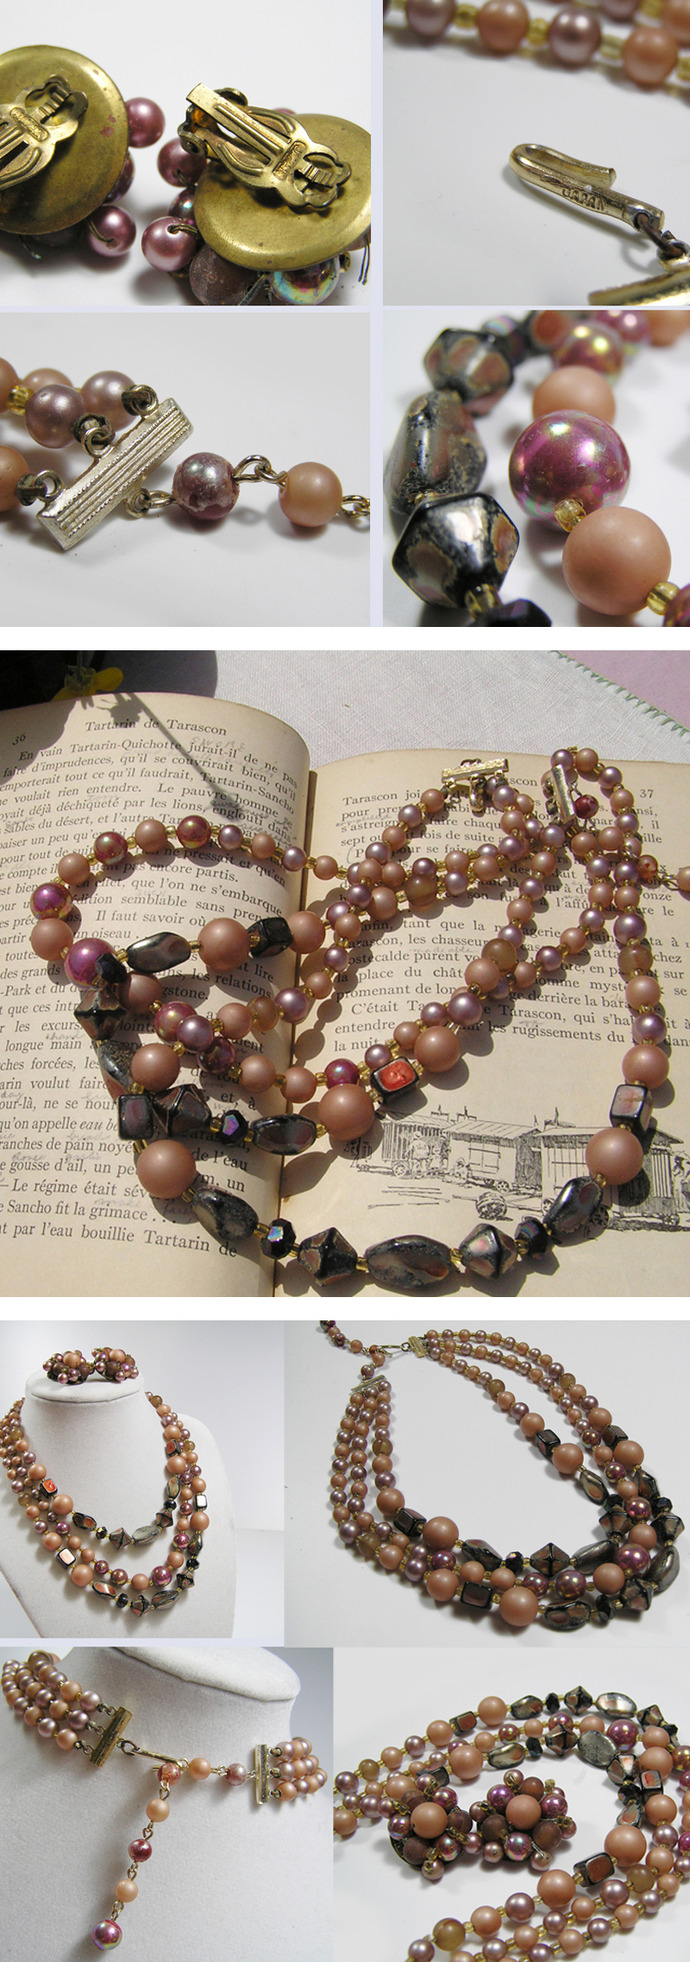 Vintage Brown pearl necklace and earring set